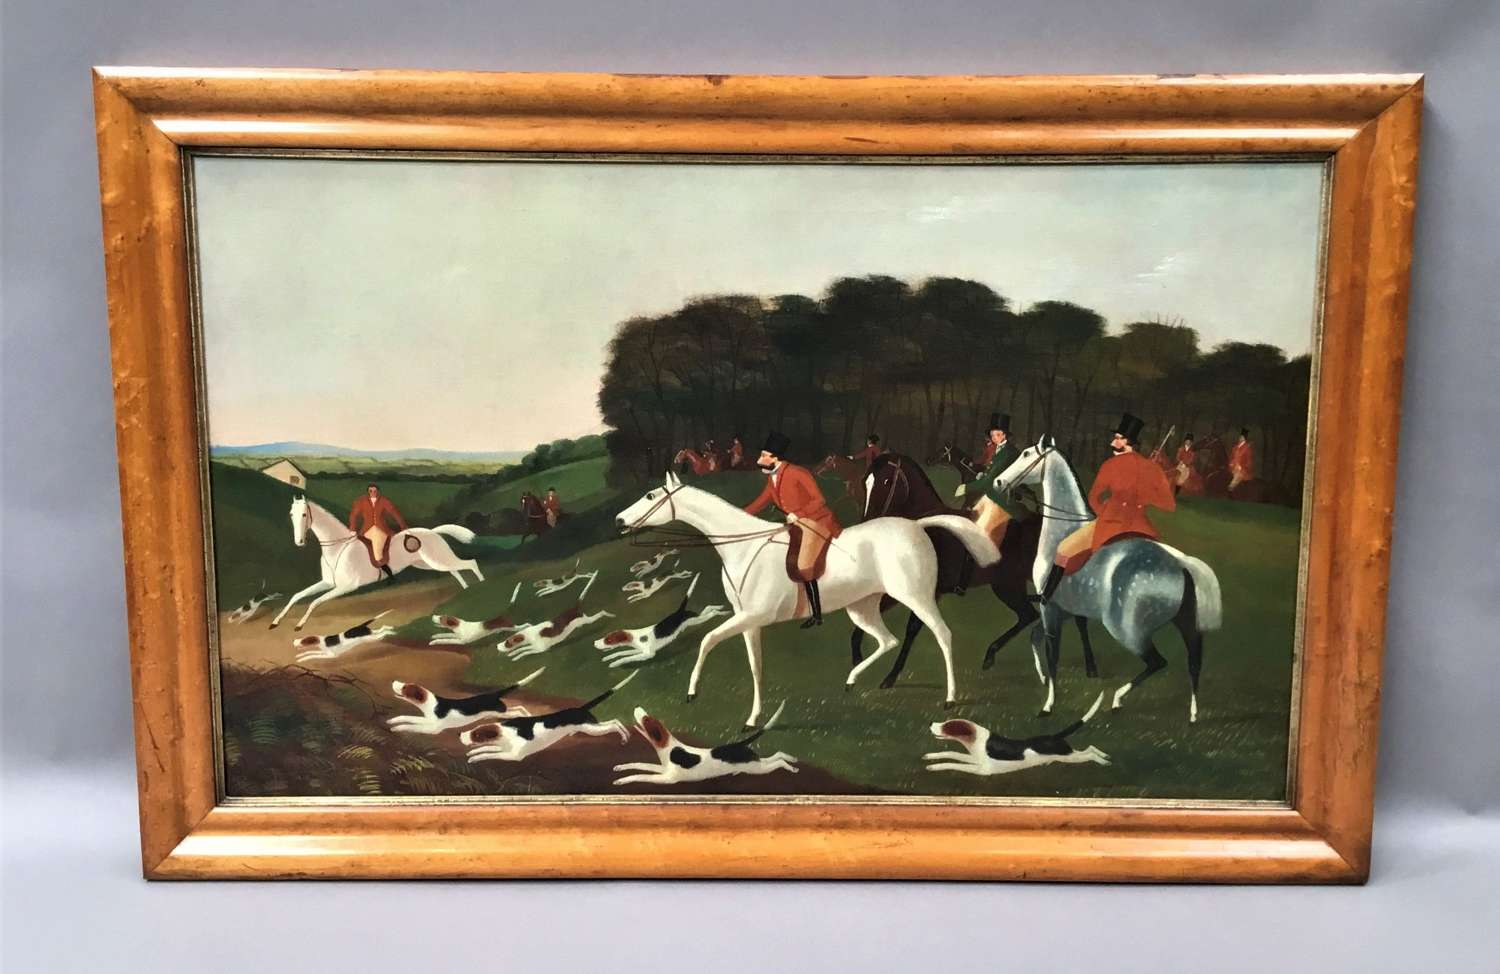 C19th 'primitive' oil painting of a hunting scene